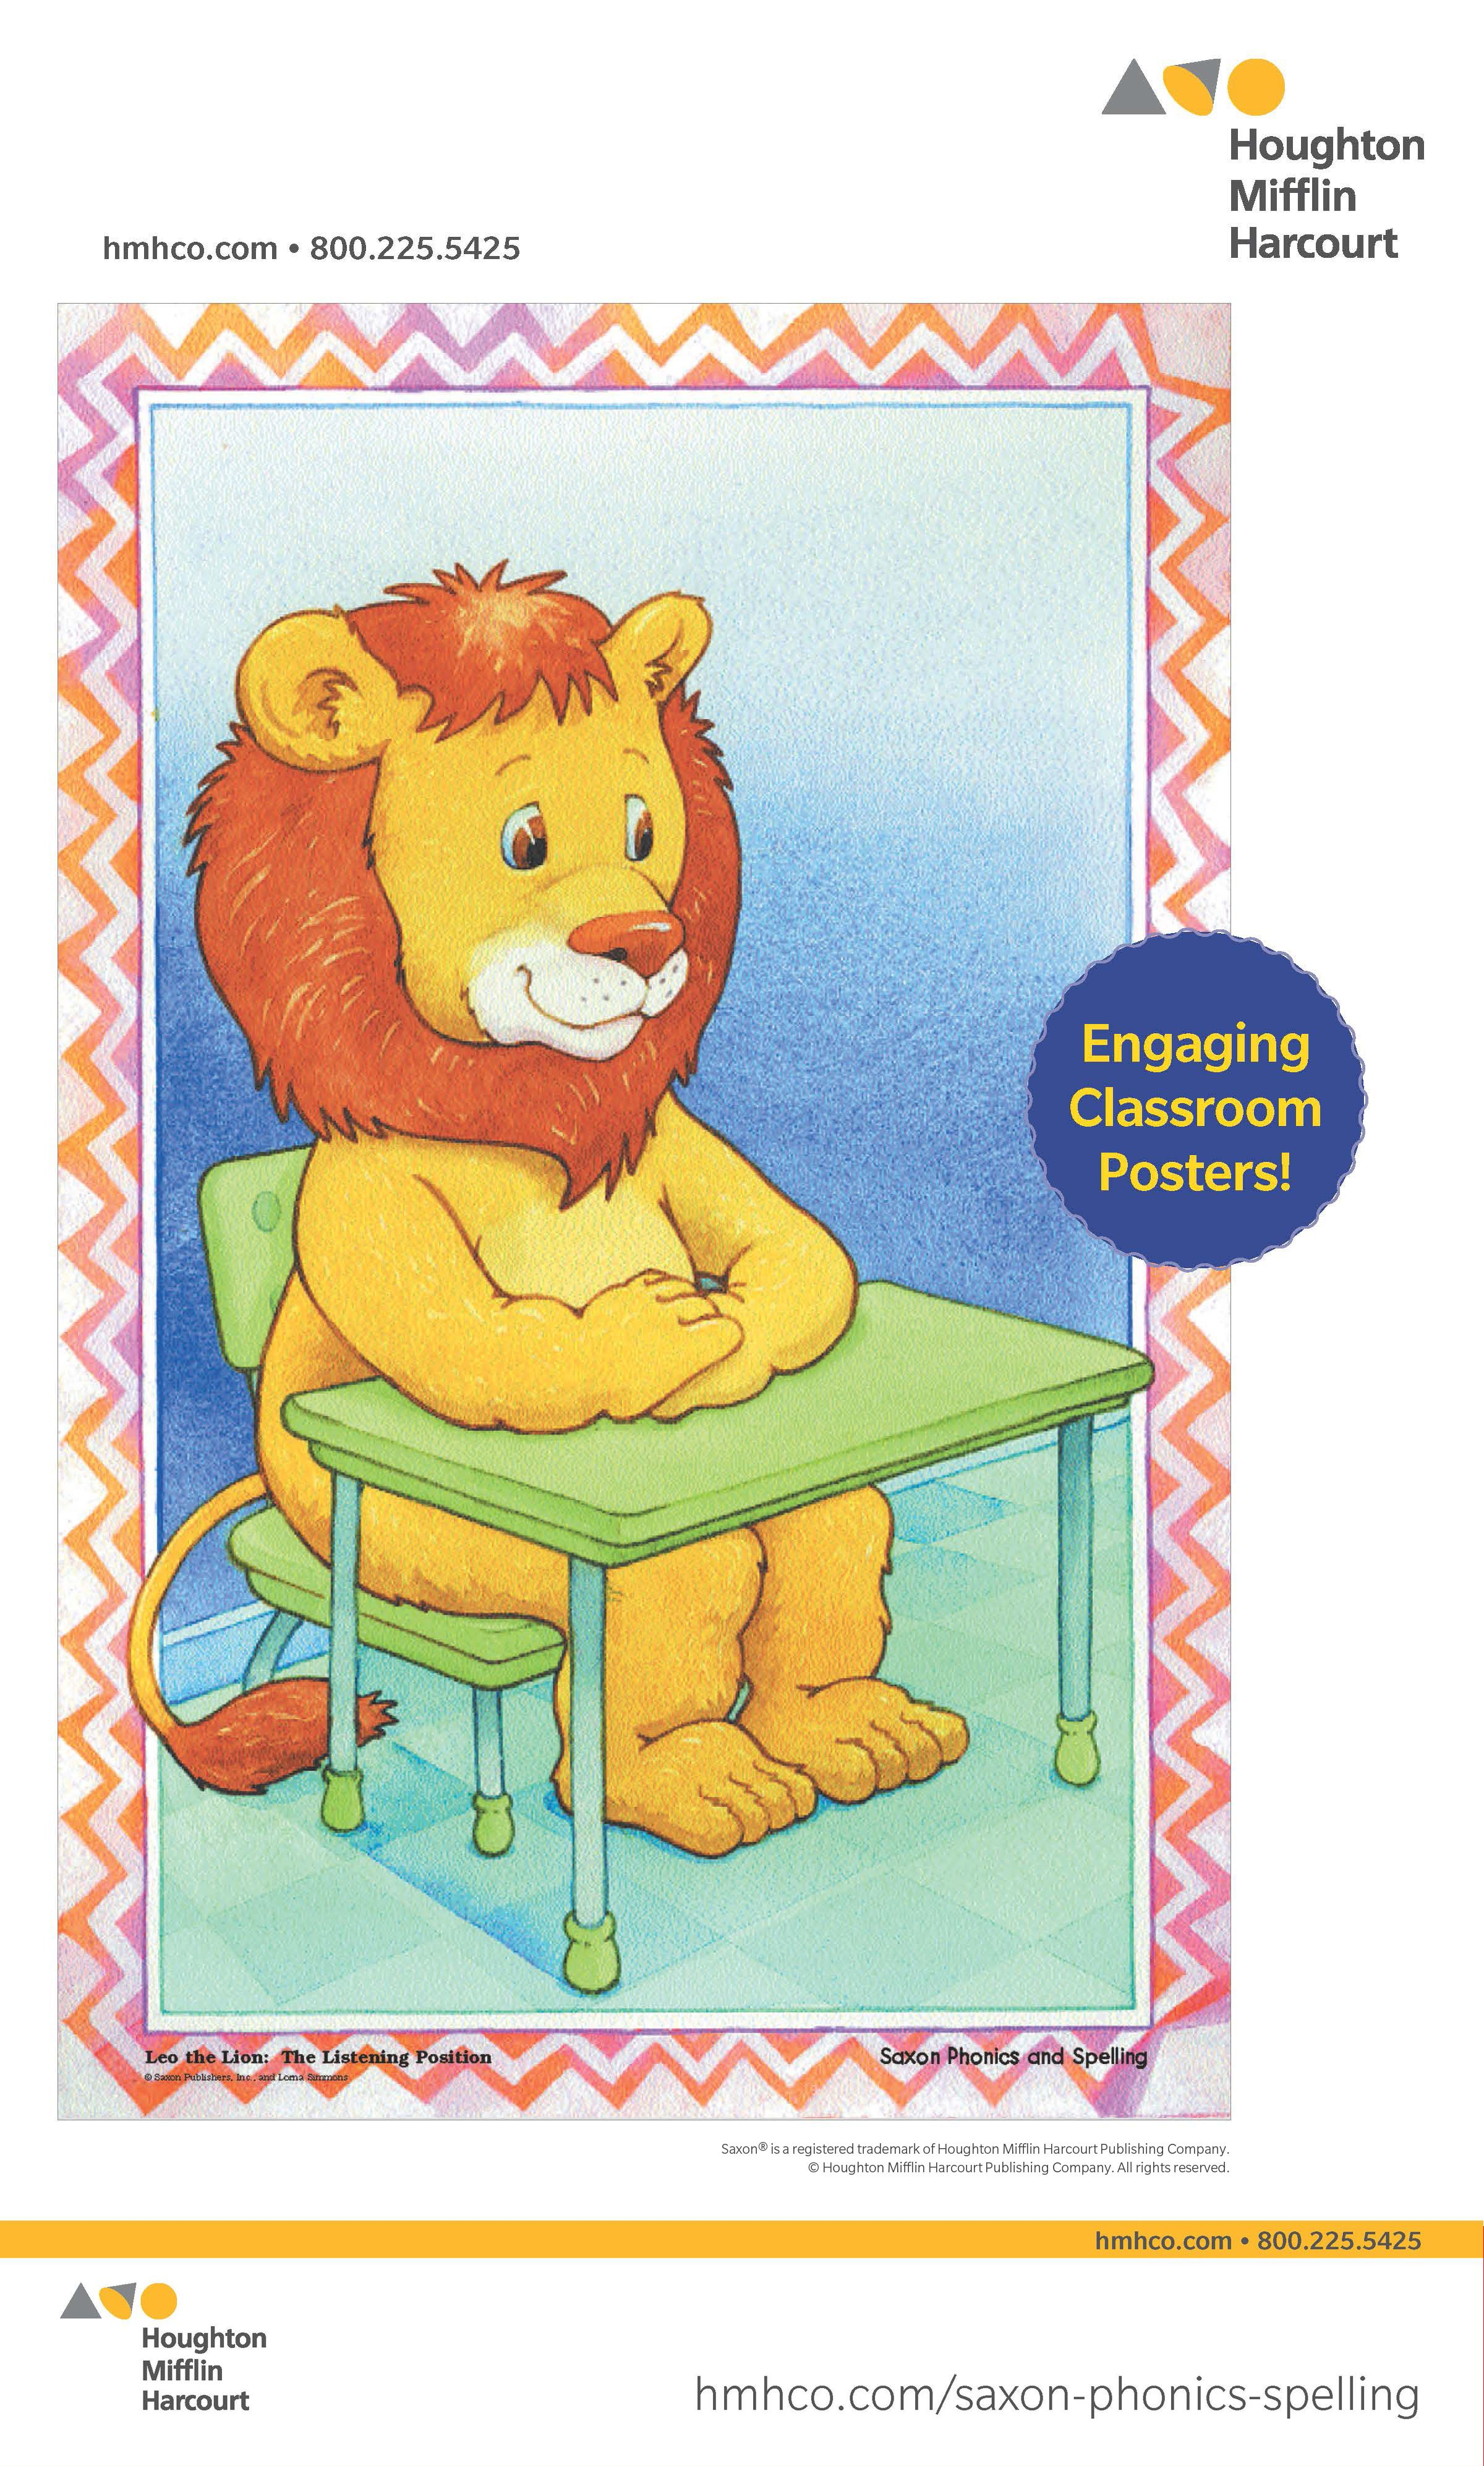 Leo The Lion Shows How To Use The Listening Position With